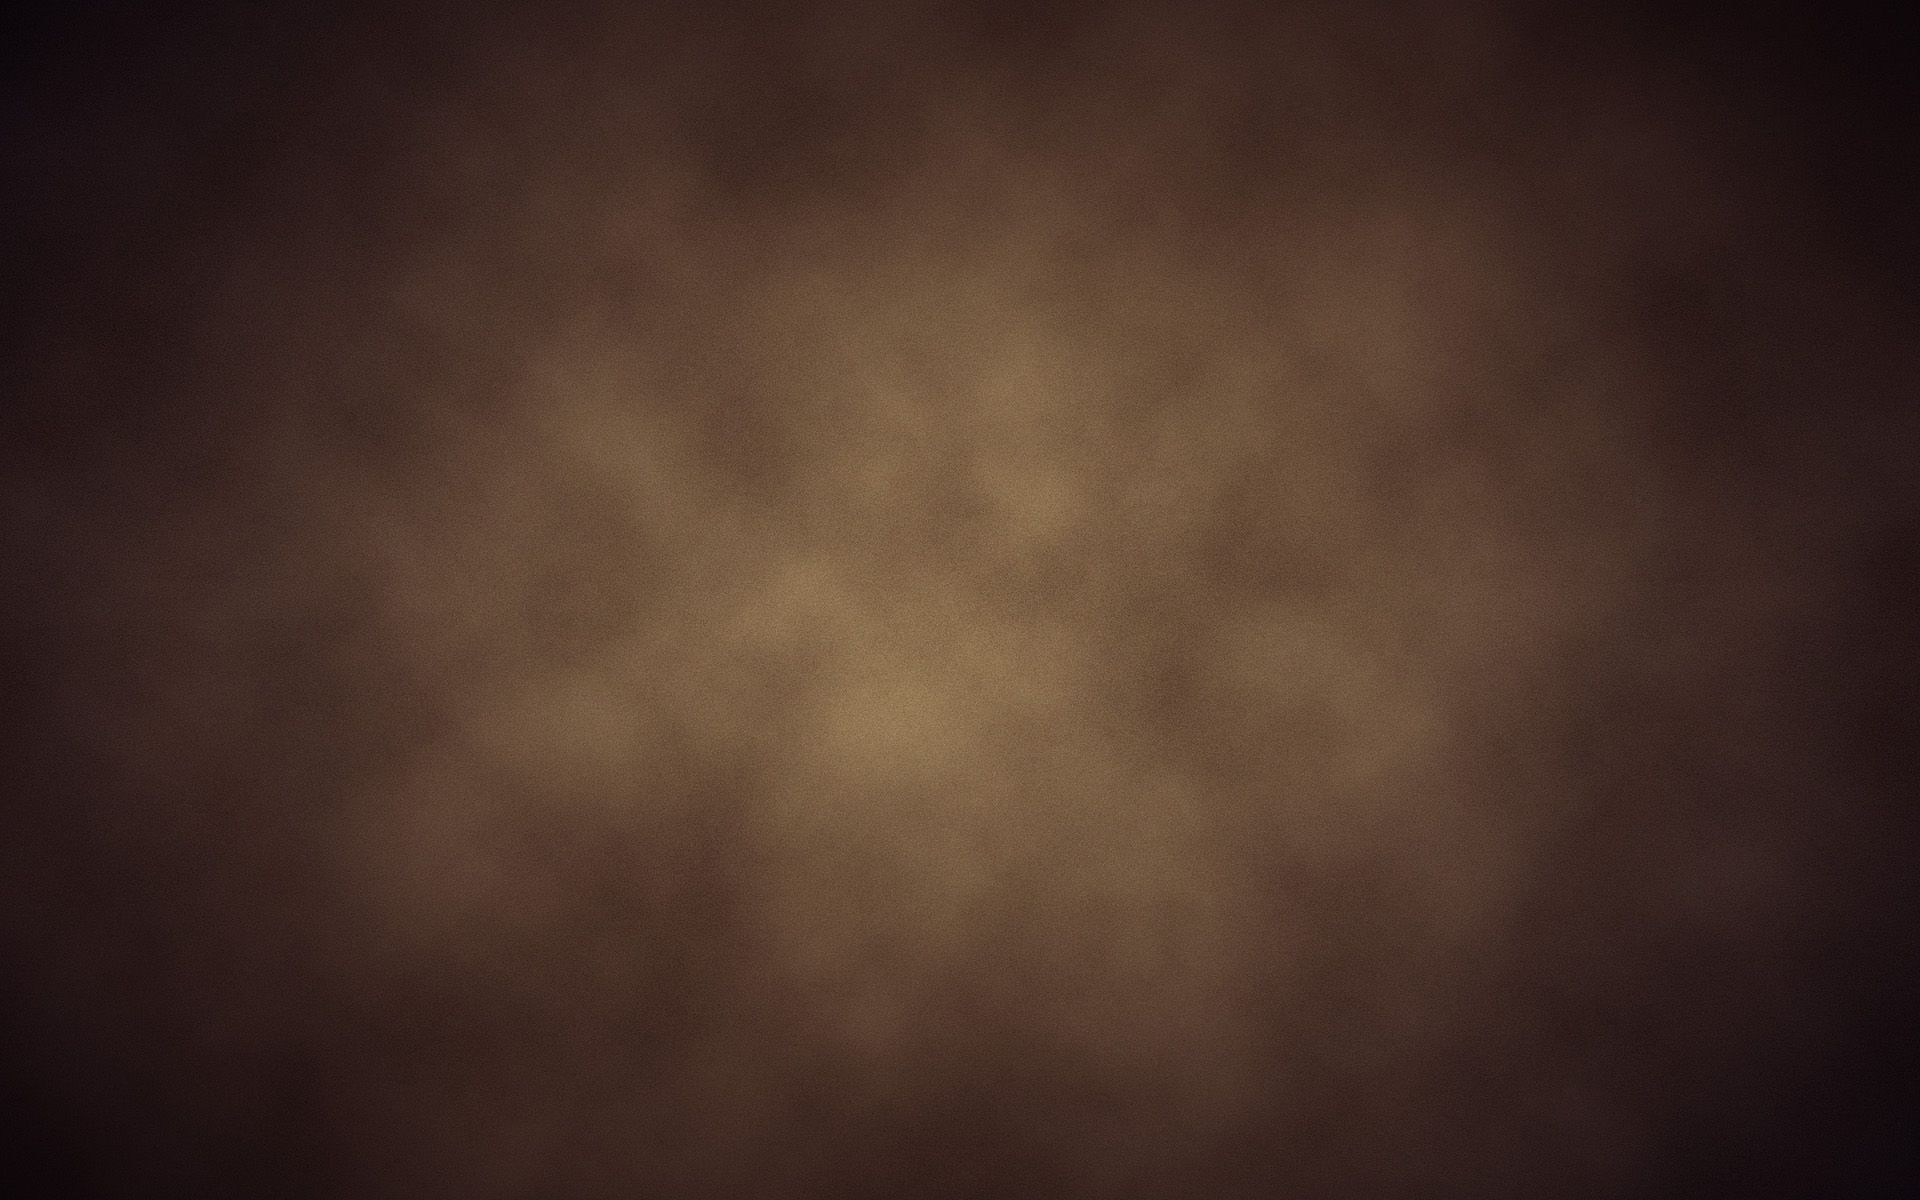 Brown Background Fashion Pict Brown Wallpaper Poster Background Design Birthday Background Images